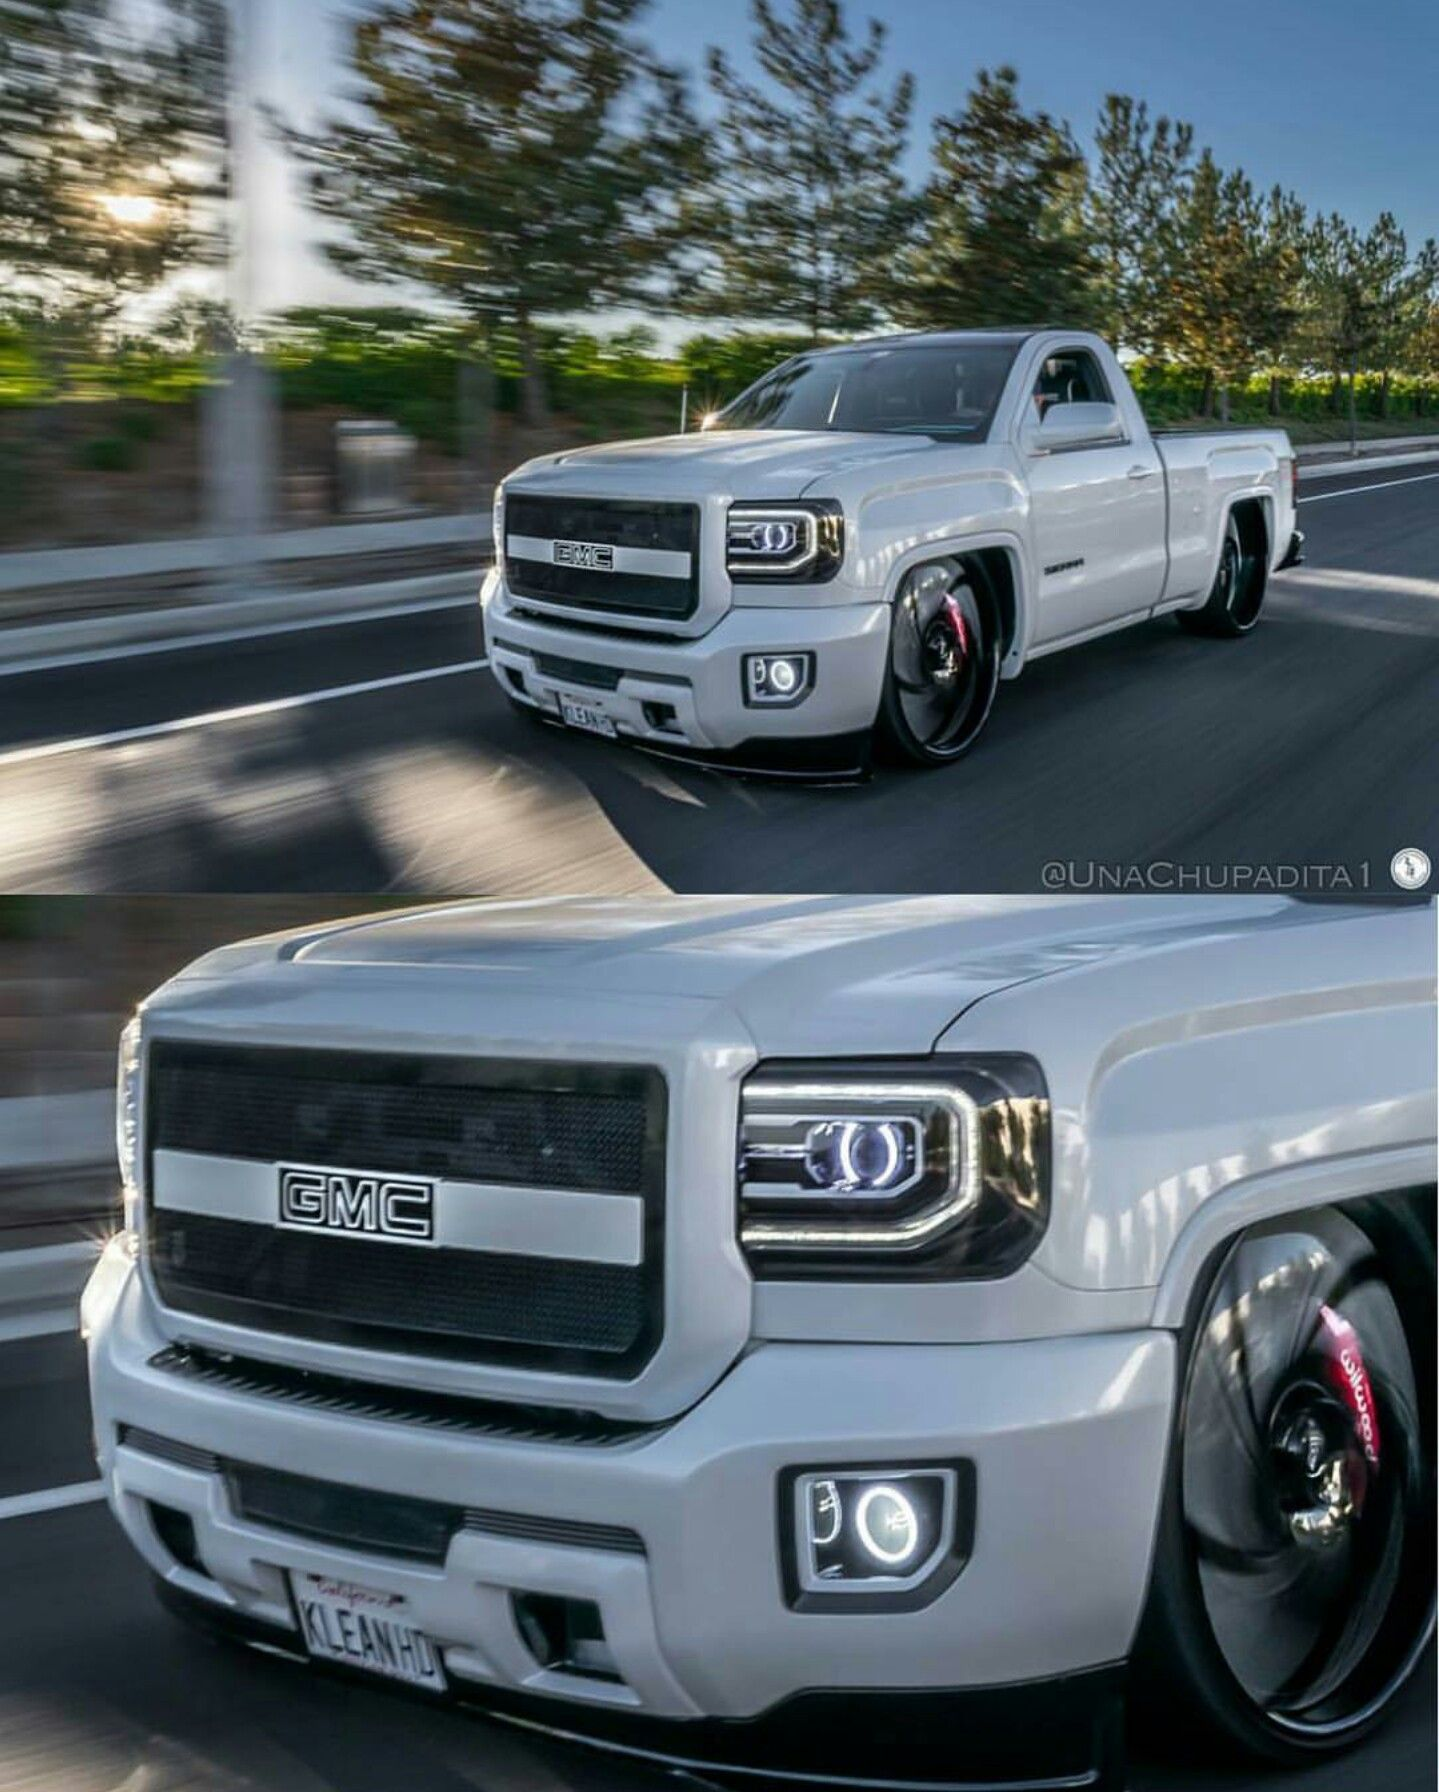 2014 Gmc Sierra On 30 S Gm Trucks Dropped Trucks Single Cab Trucks